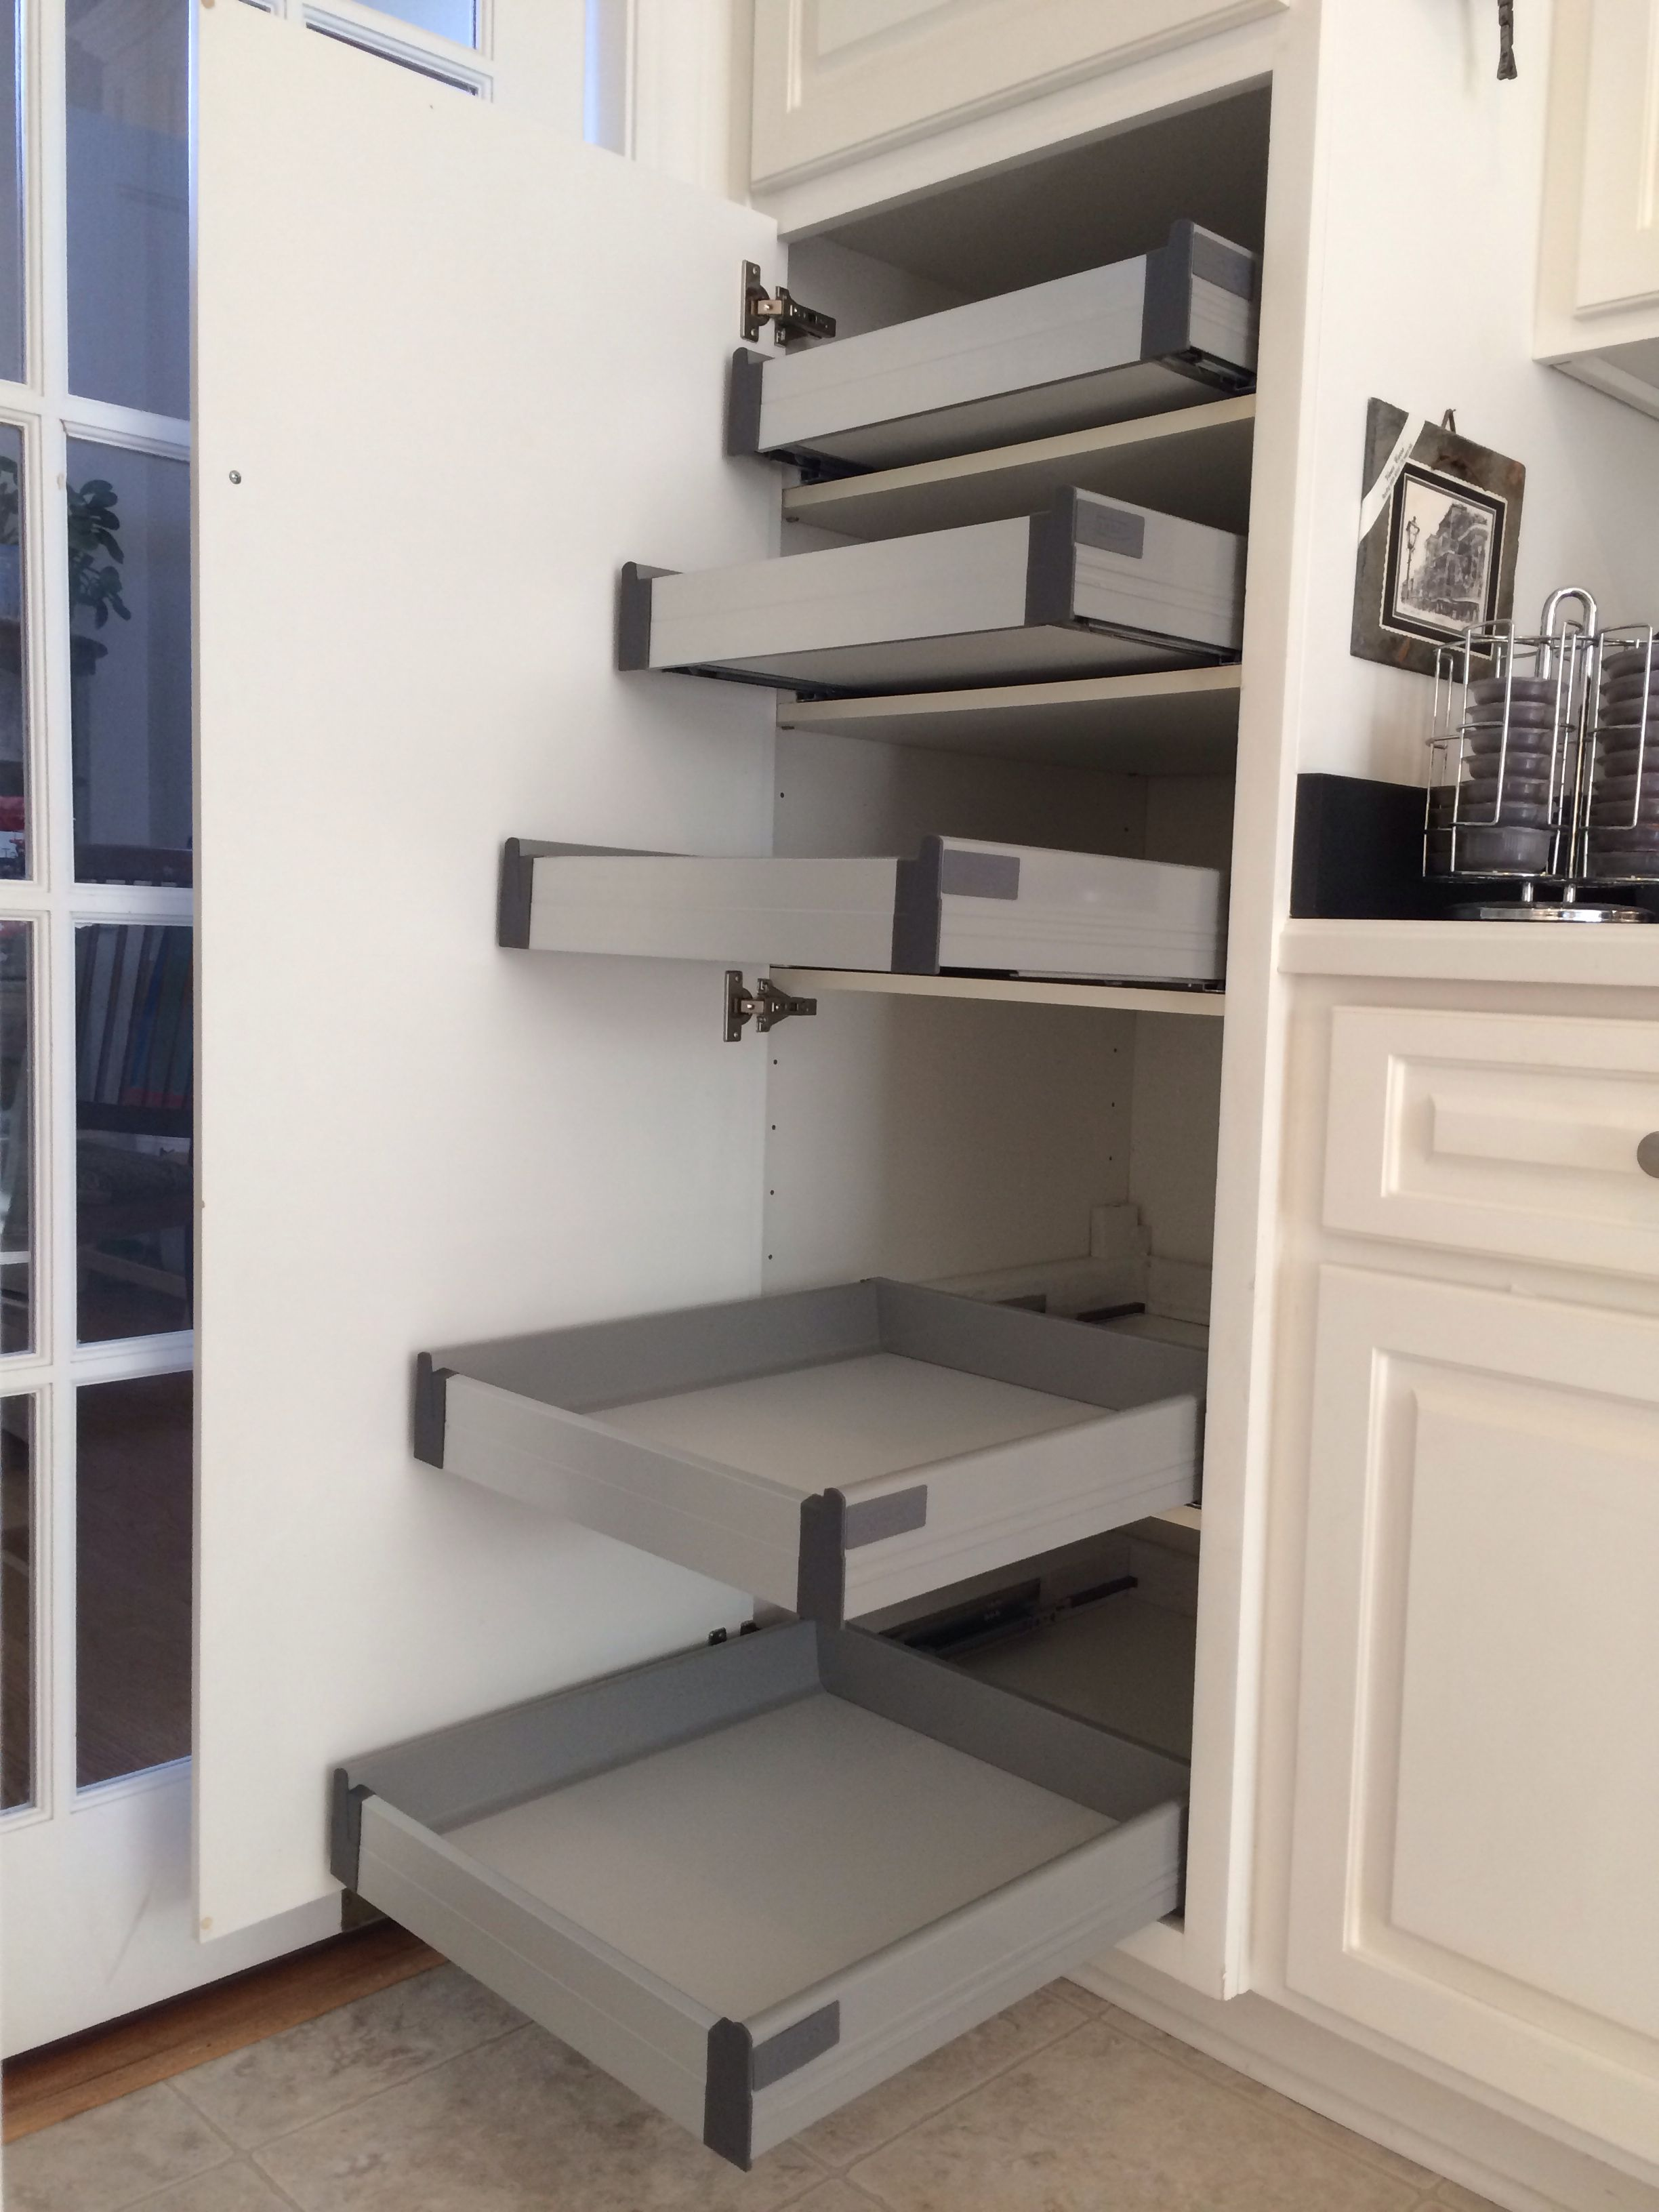 Pin By Jami Funk Wilbanks On Kitchen Ideas Kitchen Pantry Cabinet Ikea Pantry Cabinet Ikea Shelves